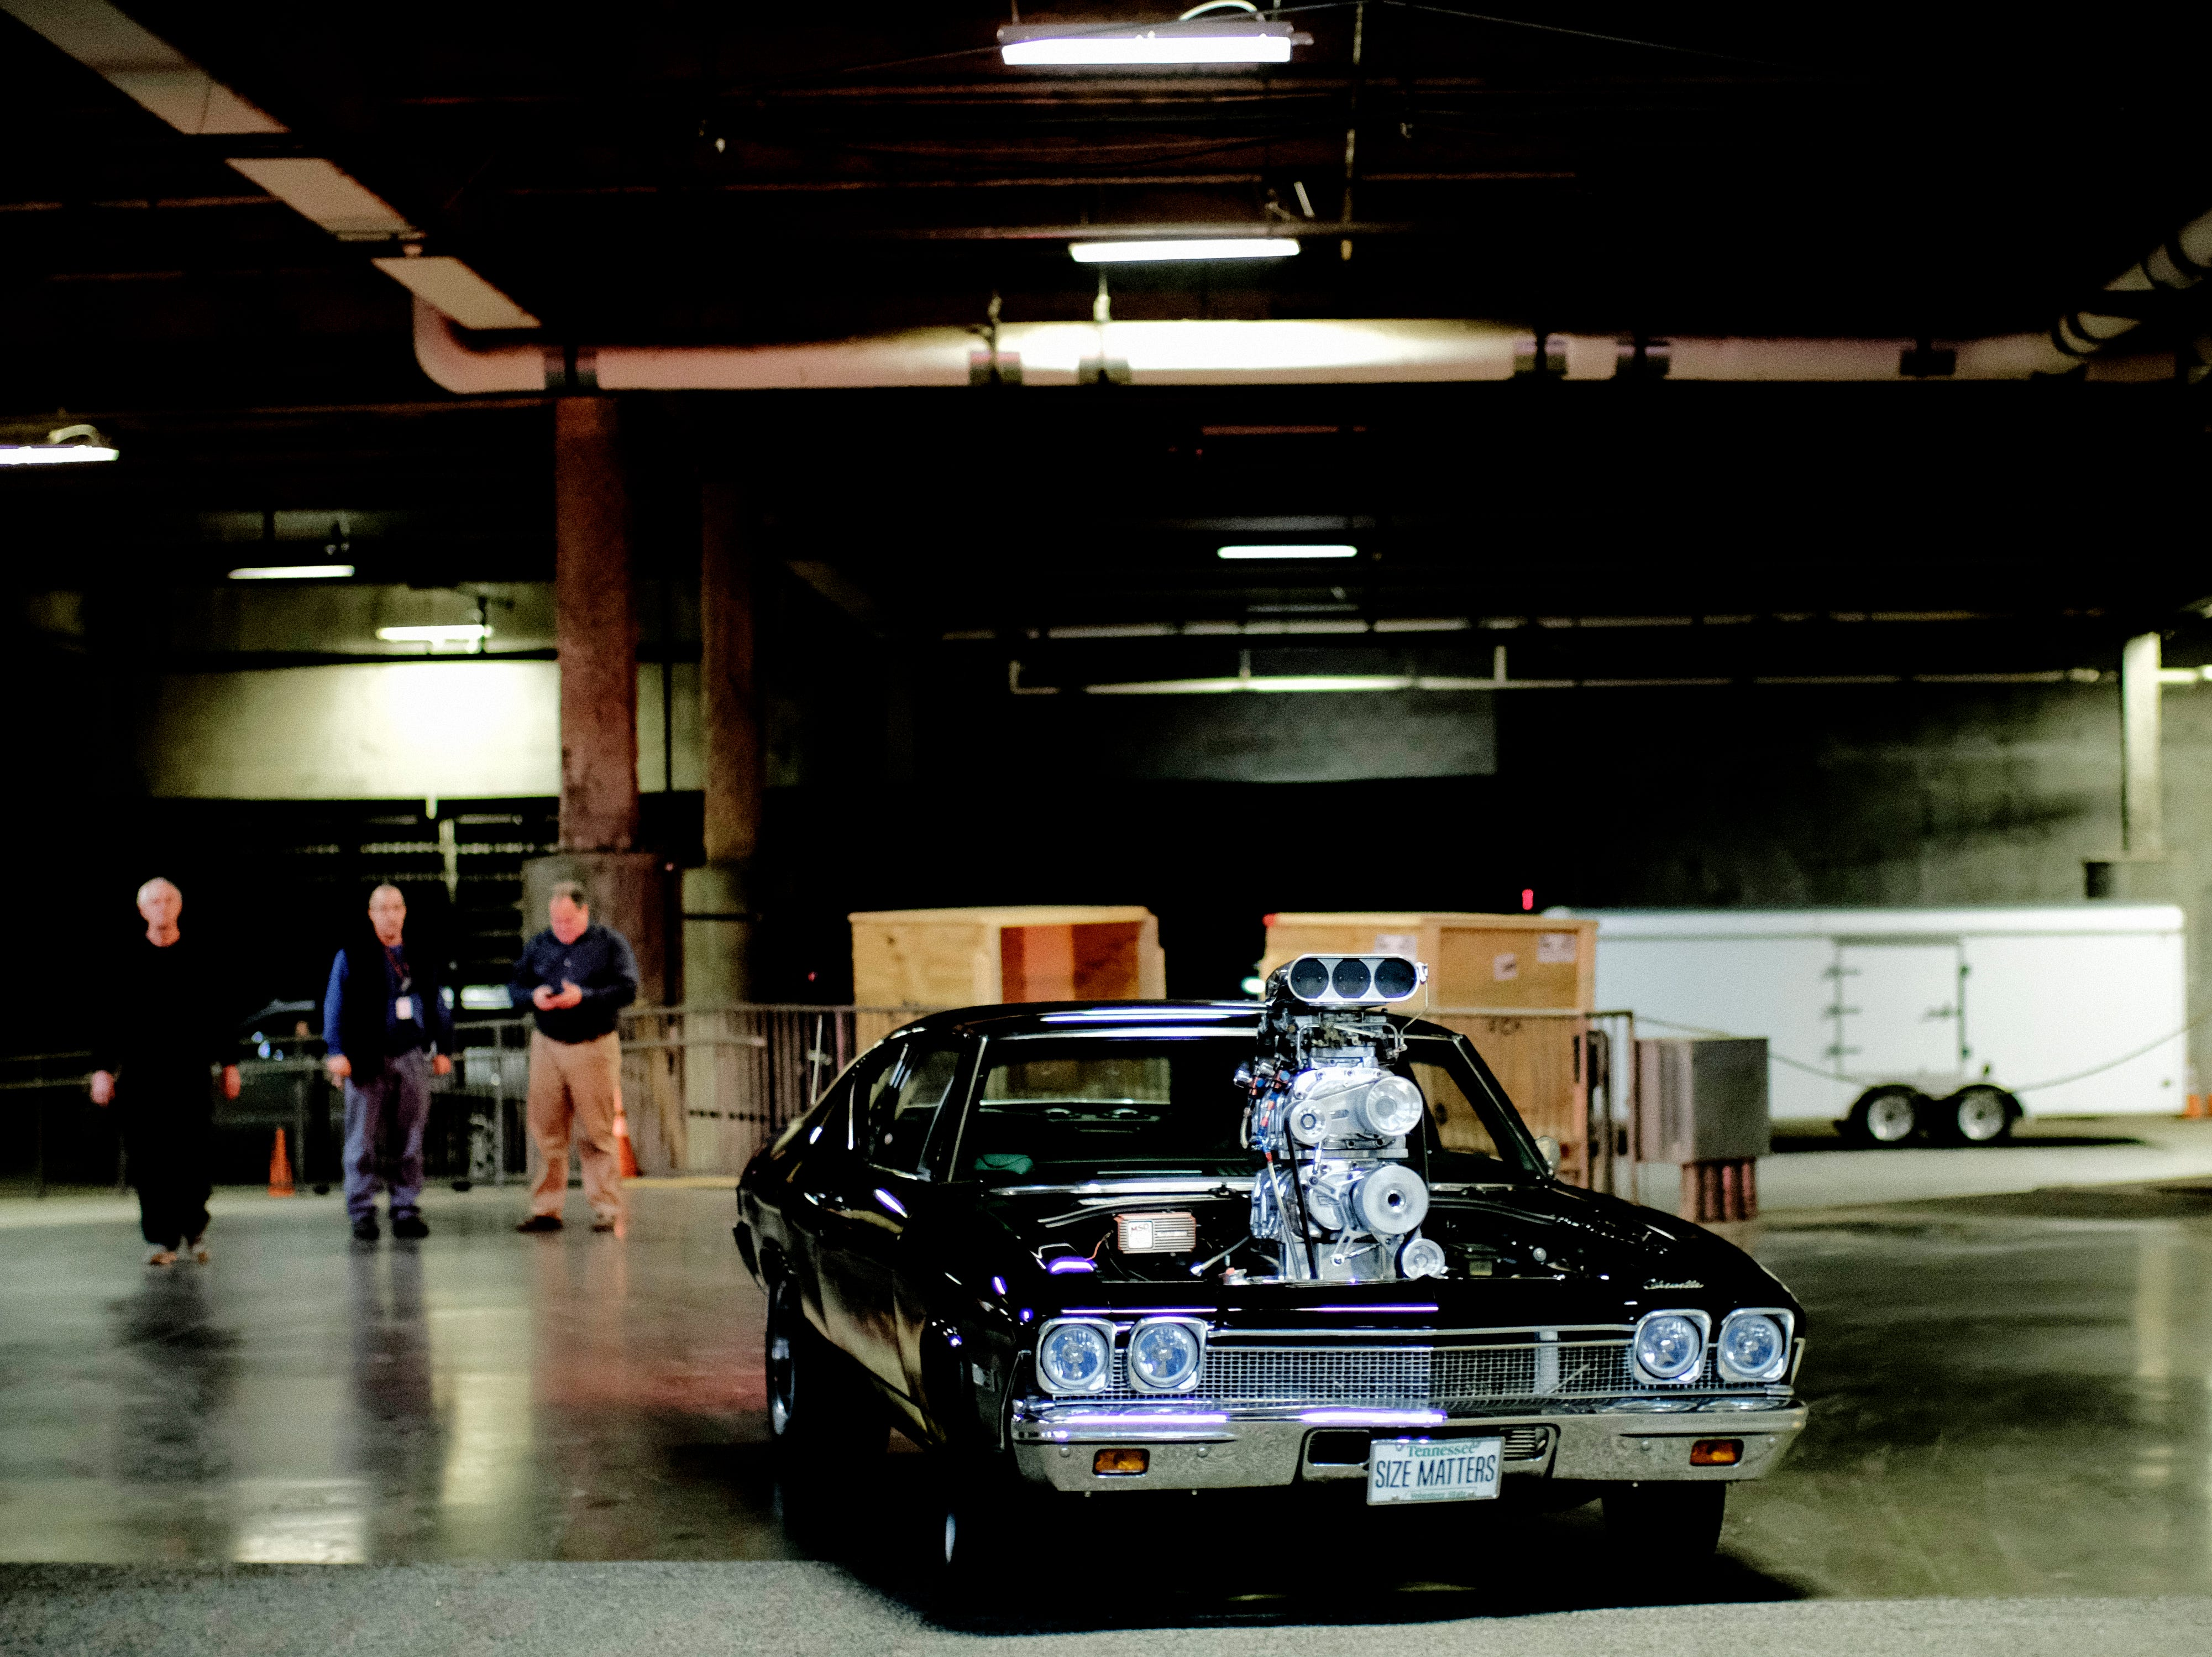 """Eddie McMillan, of Halls, rolls into the showroom in his supercharged Chevrolet Chevelle named """"The Torch"""" at the Knox News Auto Show in the Knoxville Convention Center in Knoxville, Tennessee on Wednesday, February 20, 2019."""